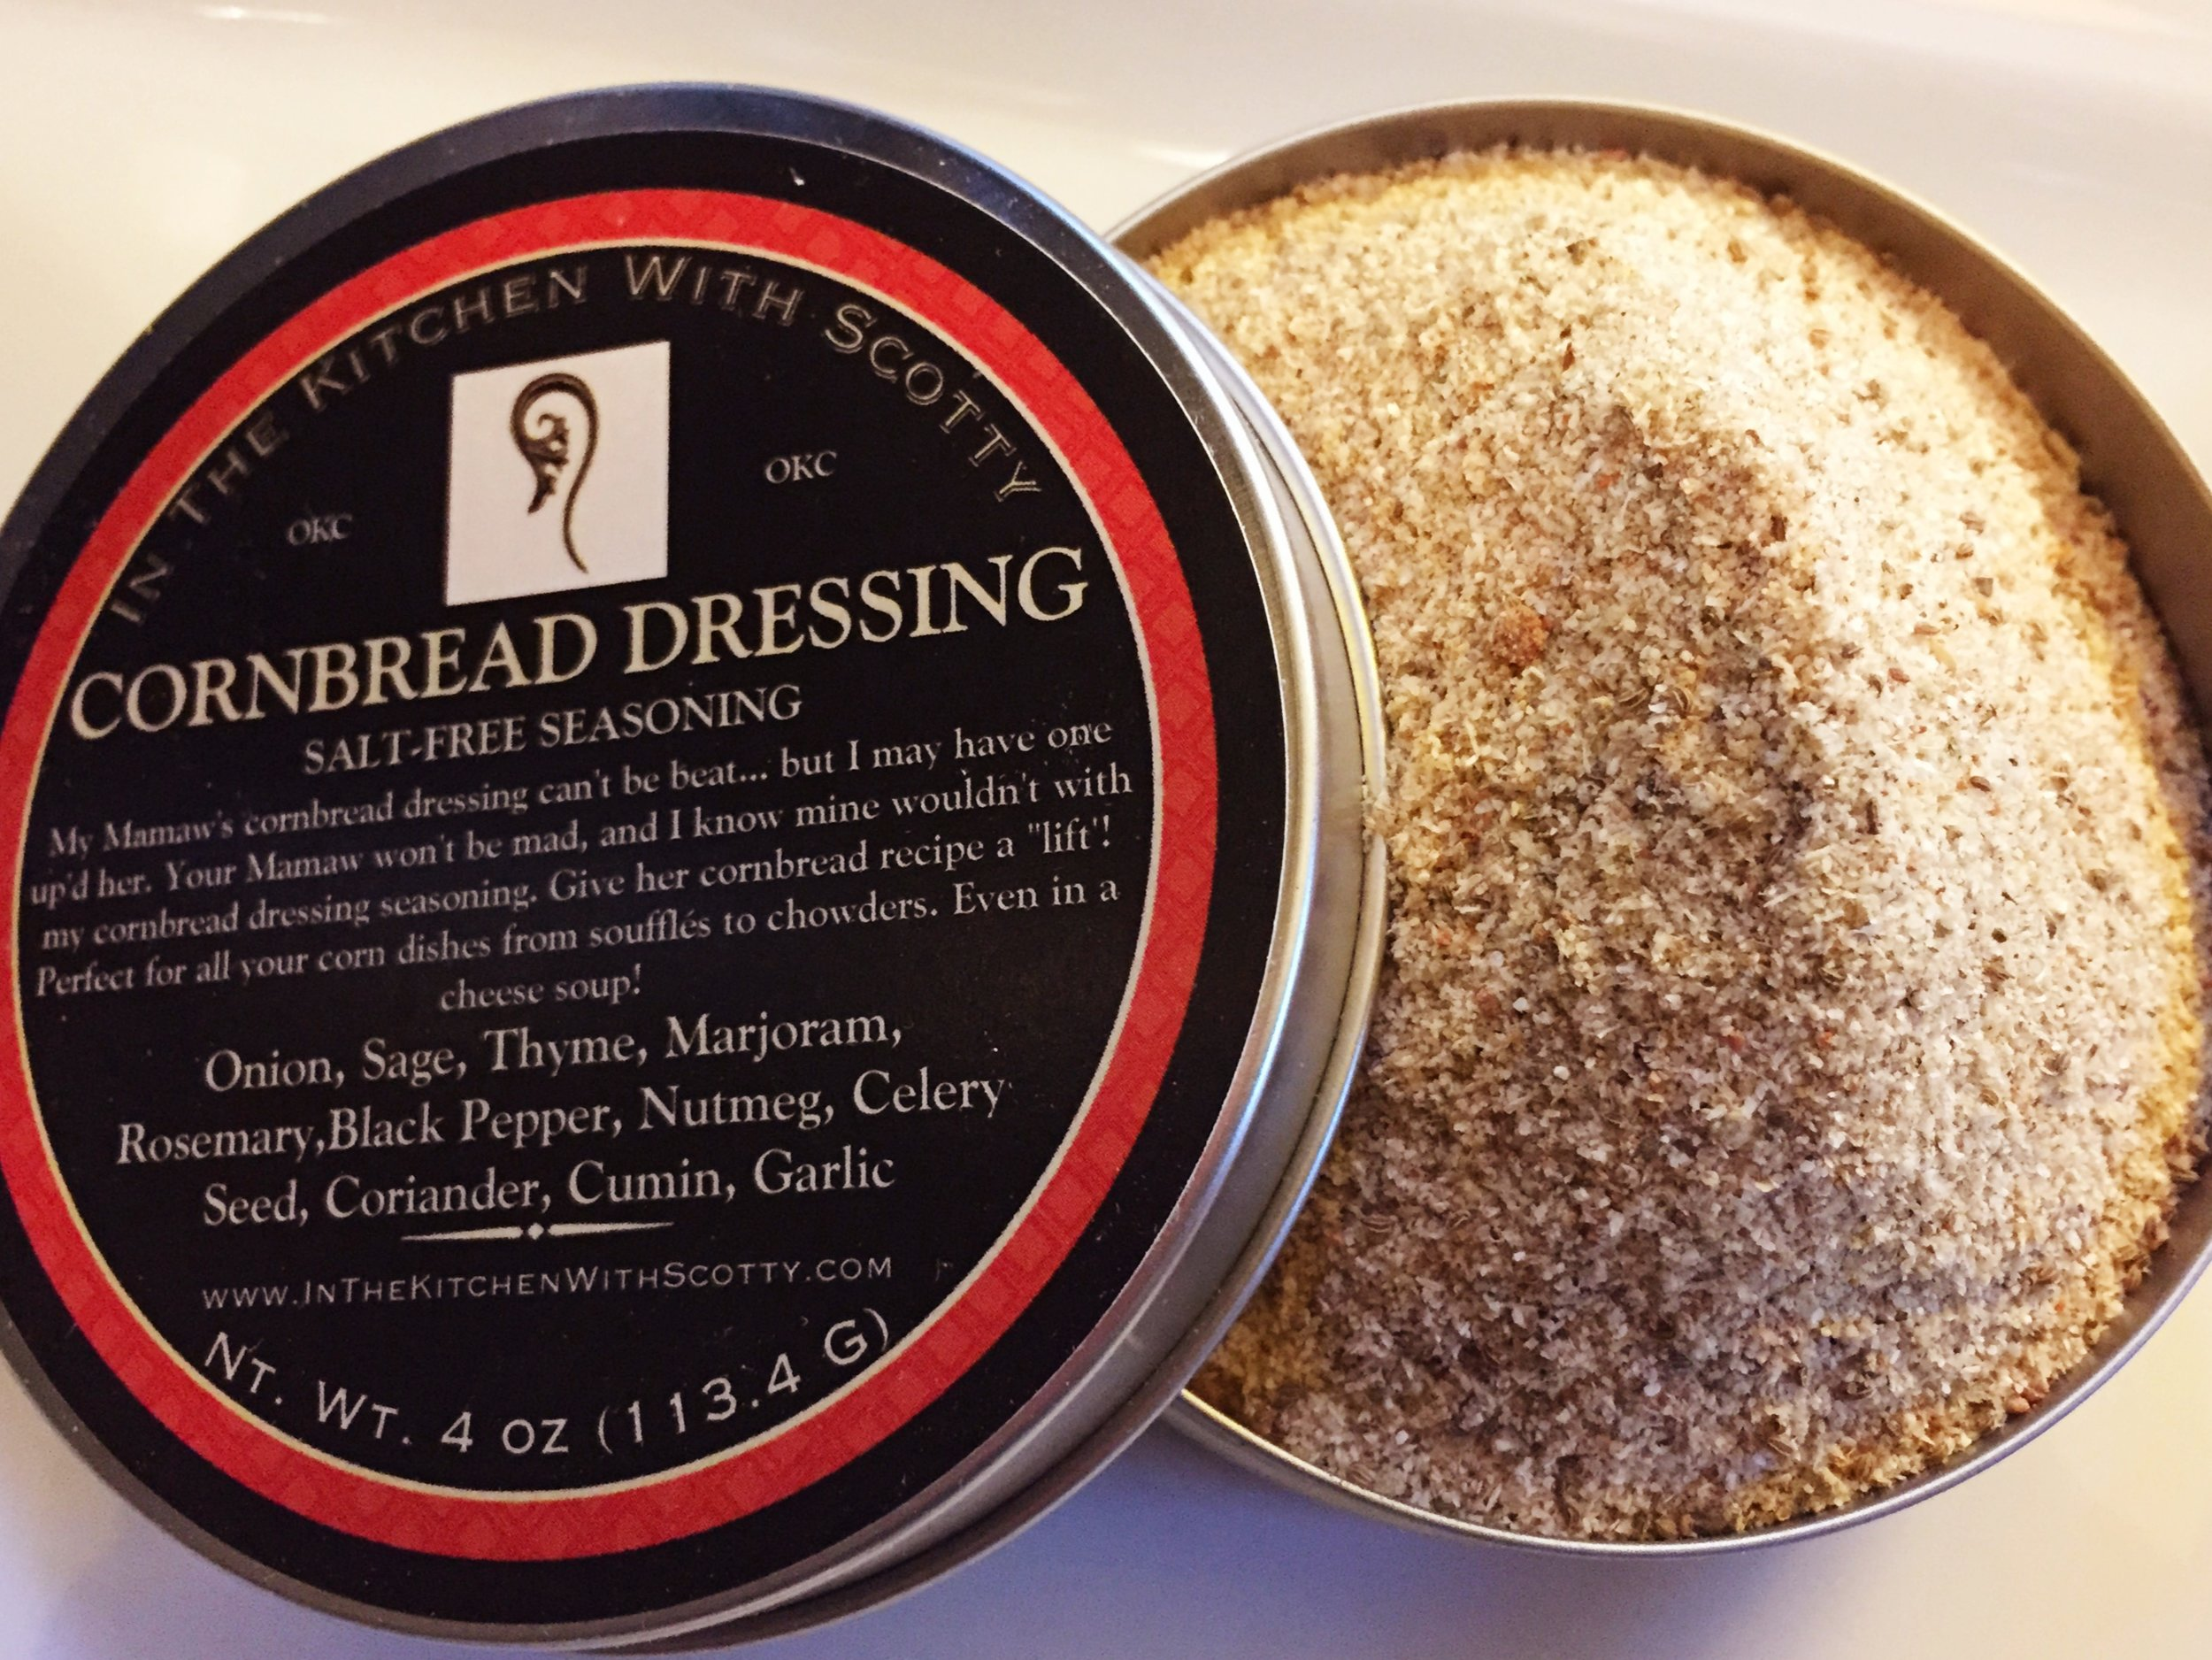 Delicious herbs and spices, including sage, celery seed,and nutmeg. Not just for cornbread dressing, and perfect for chowders!